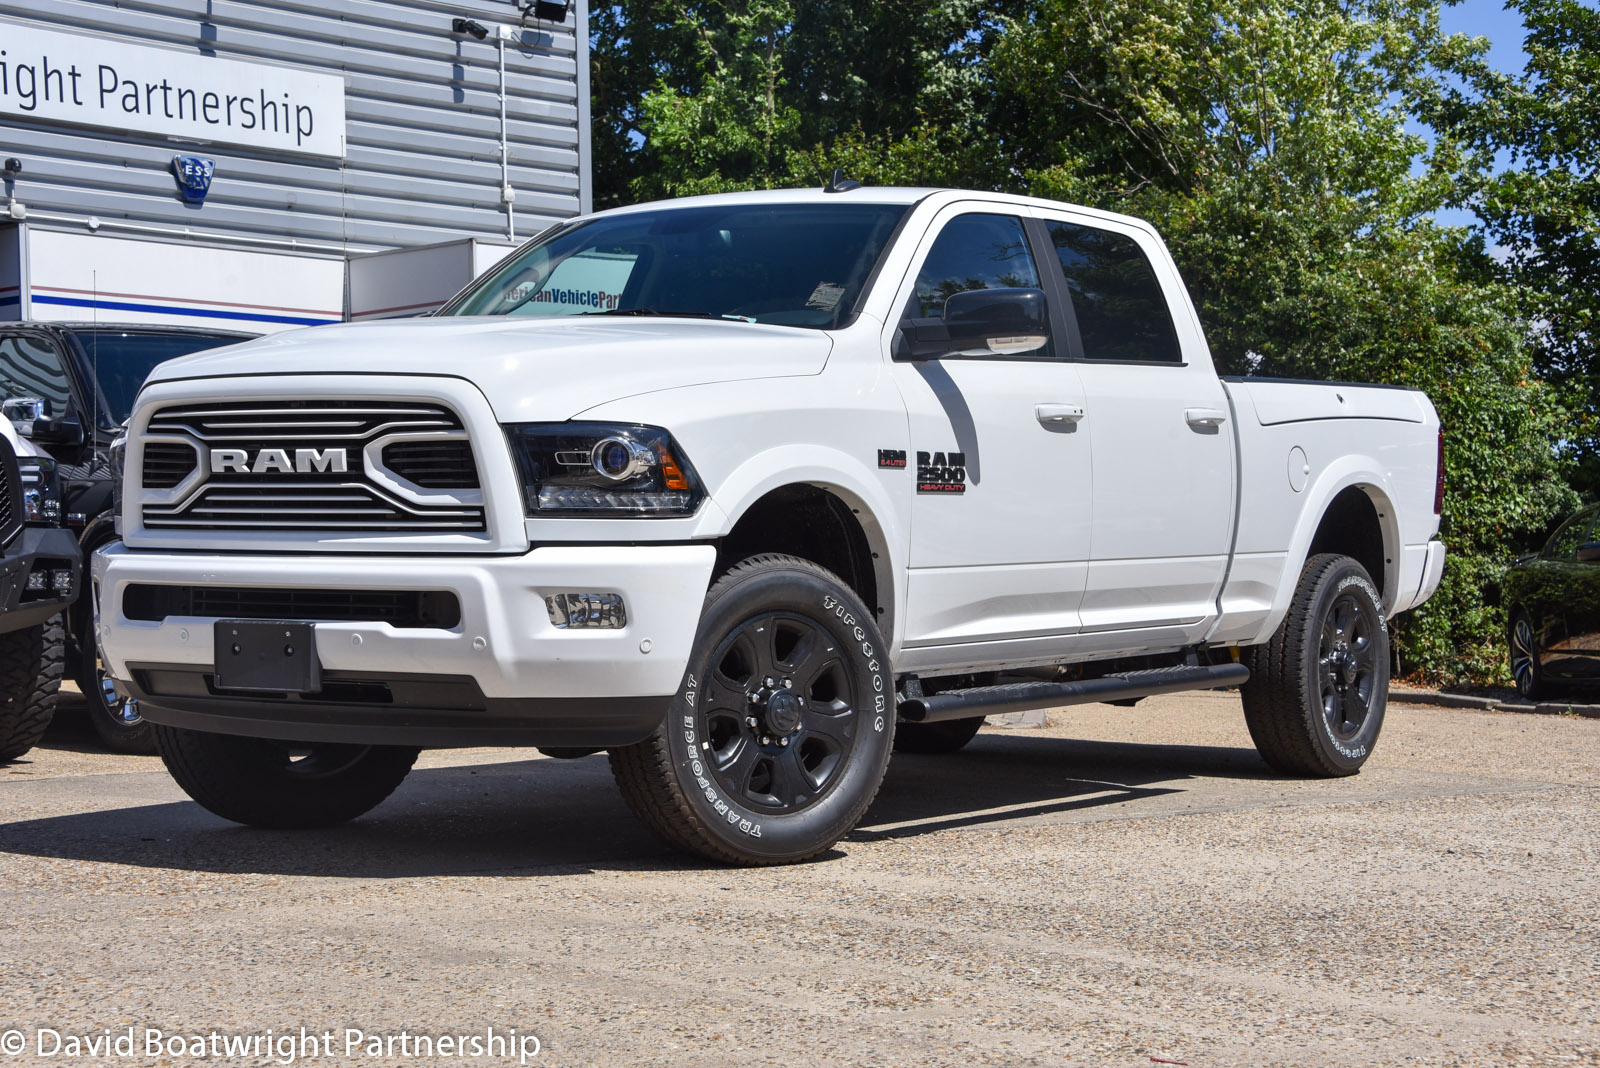 Dodge Ram | Ford F150 | Ford Mustang | American vehicles ...